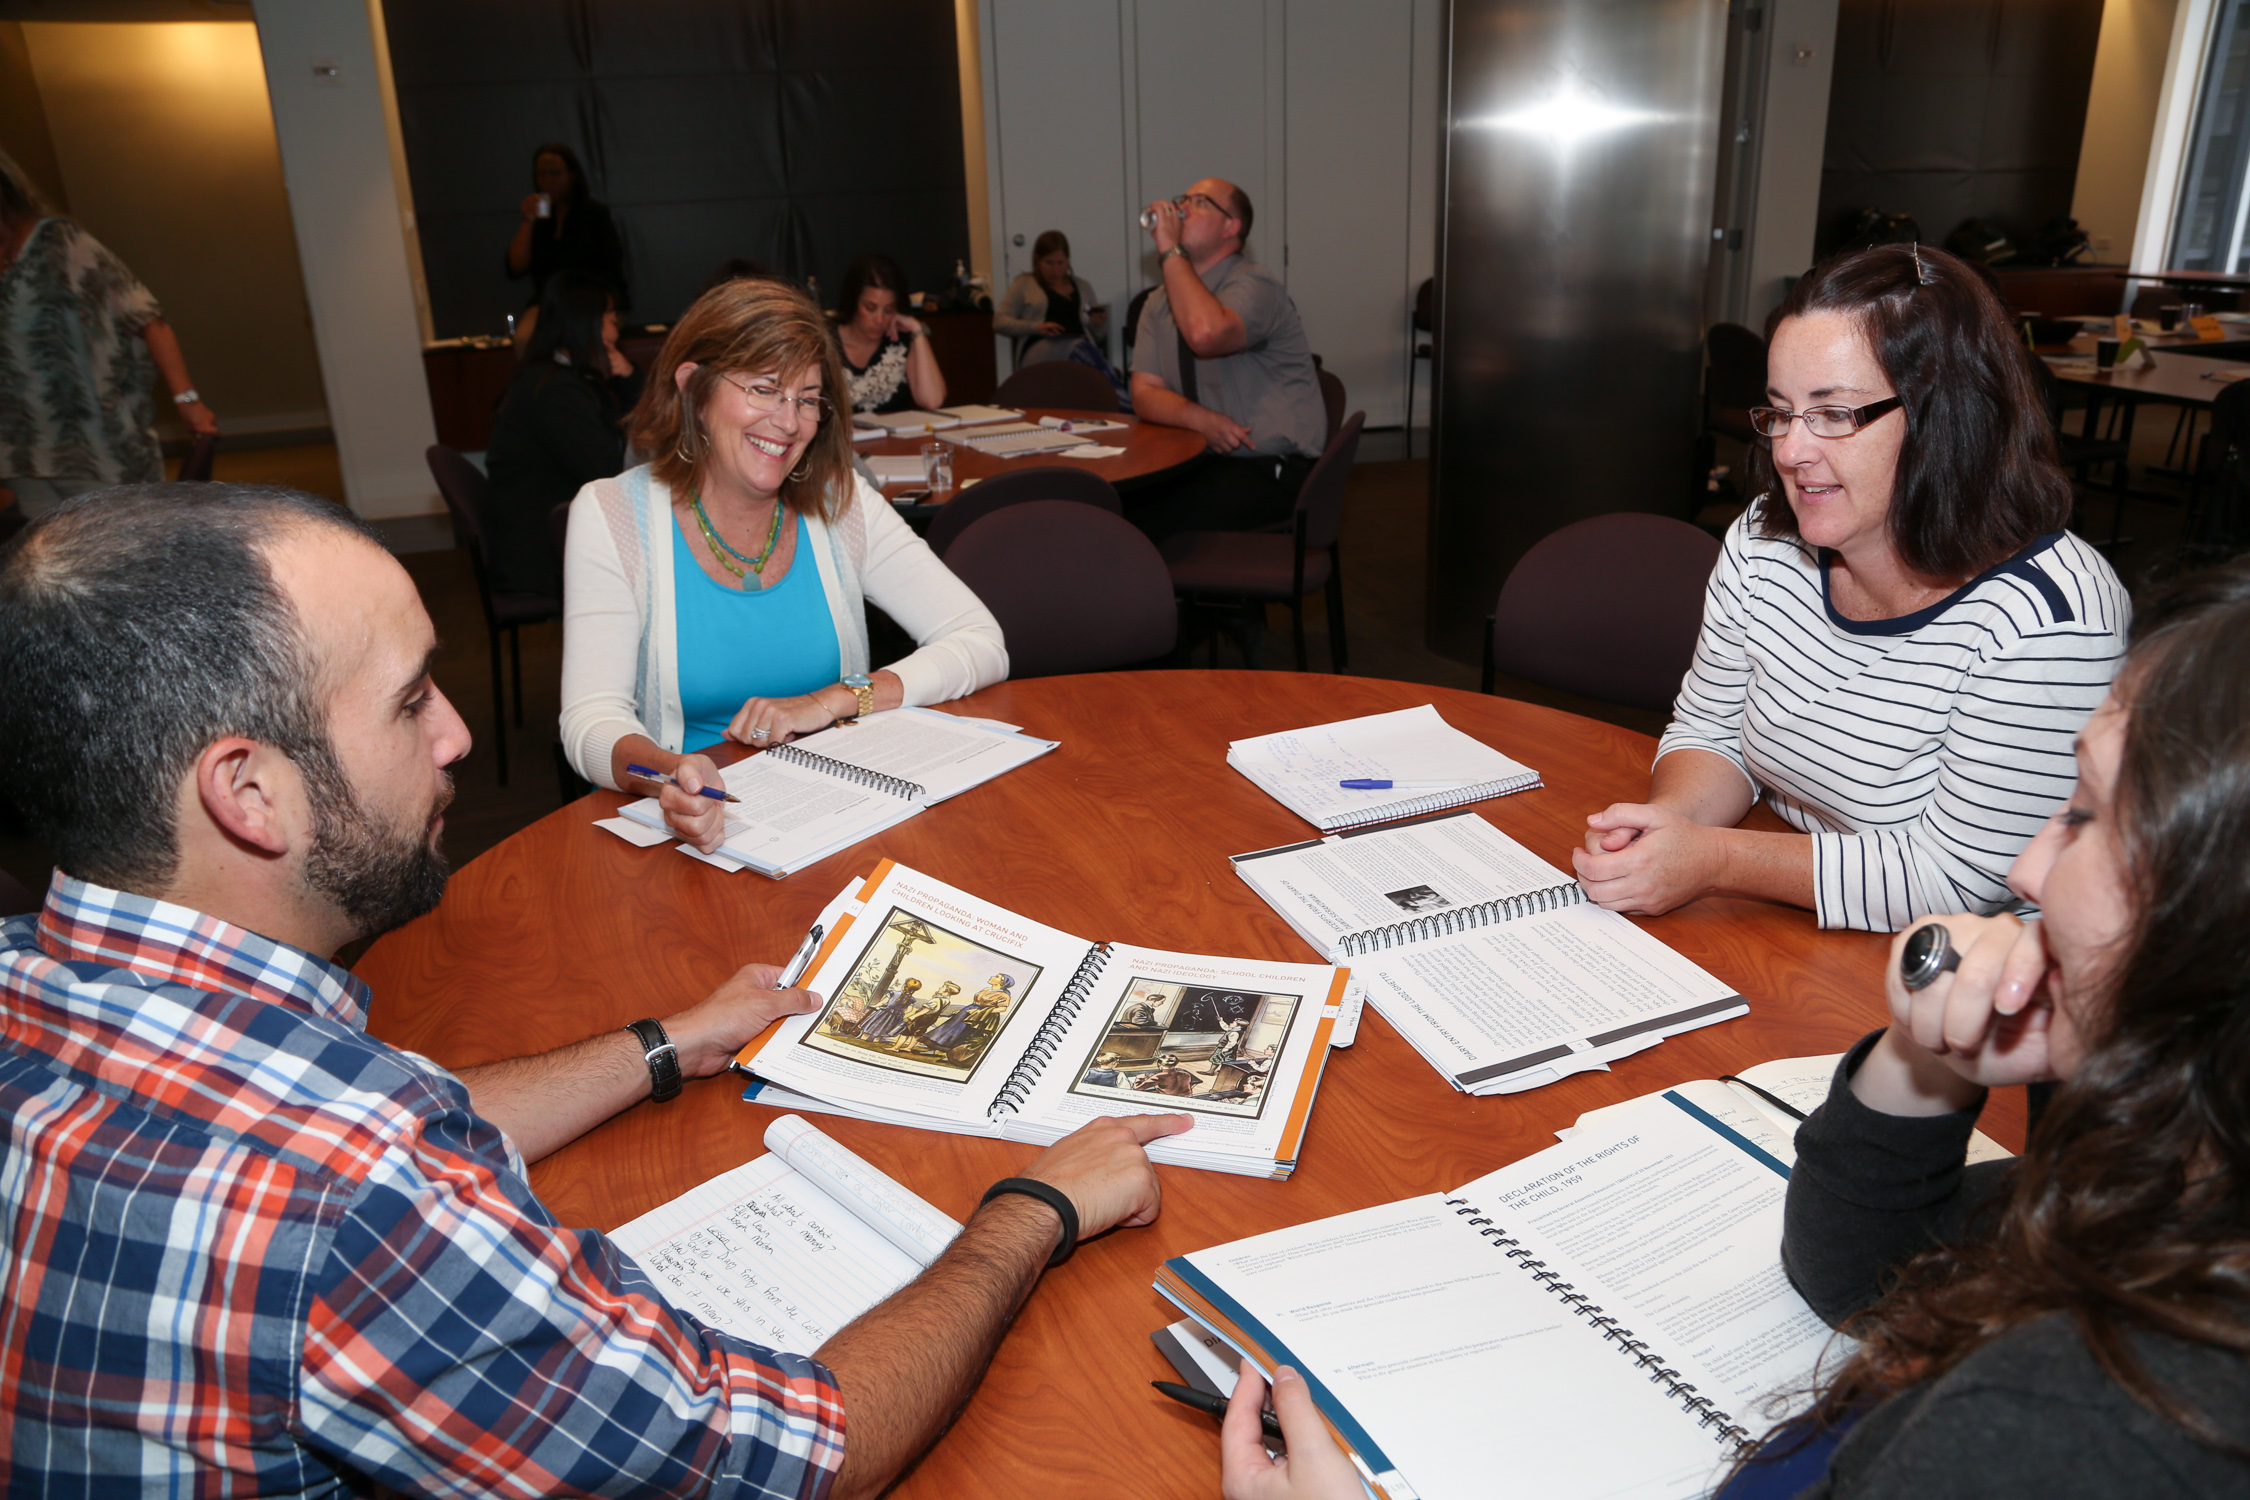 Educators at the 2014 Wolf Conference Discuss Holocaust Education